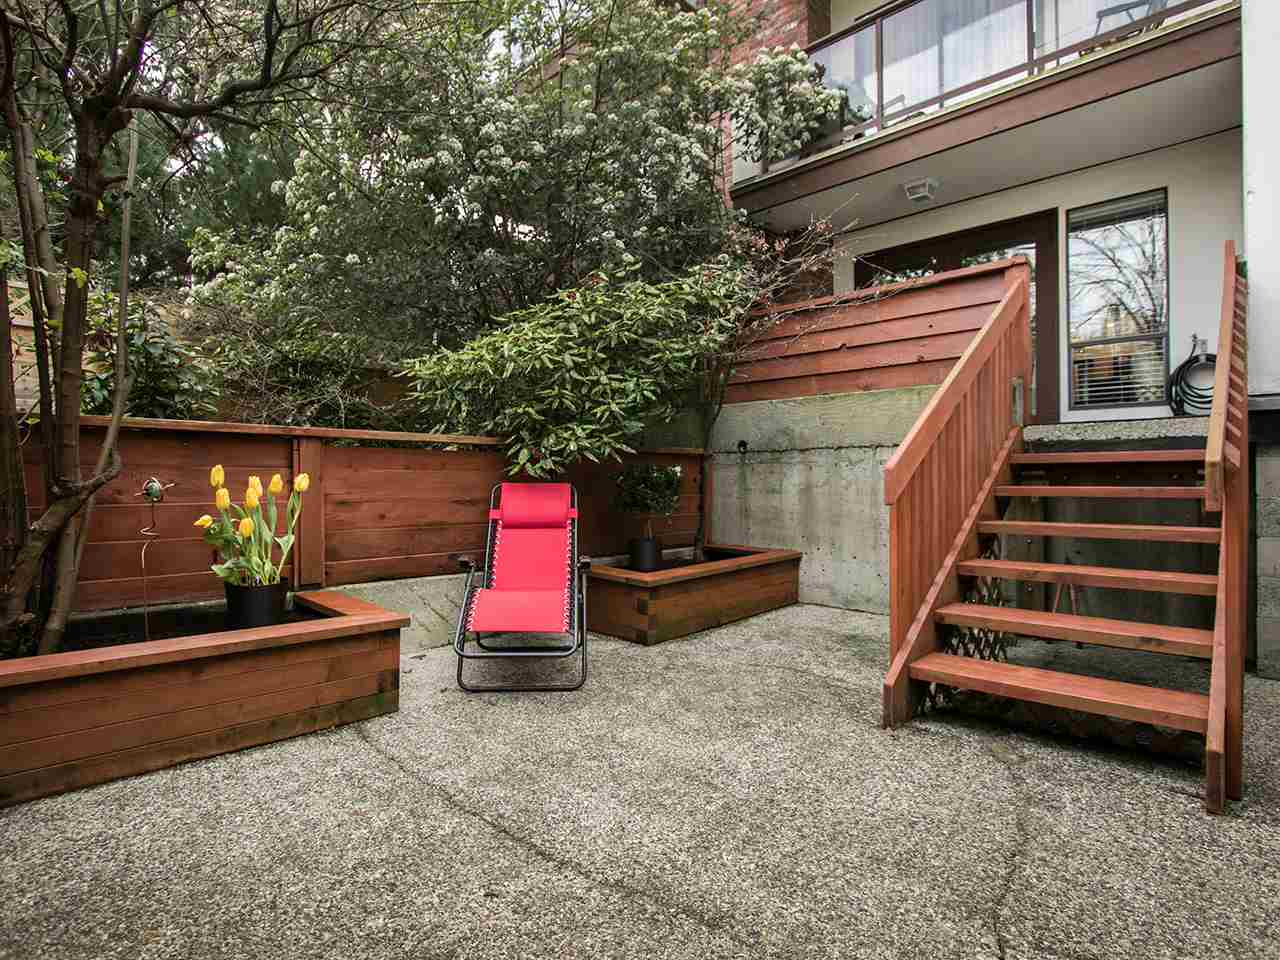 Photo 18: 101 1775 W 10TH AVENUE in Vancouver: Fairview VW Condo for sale (Vancouver West)  : MLS® # R2038742